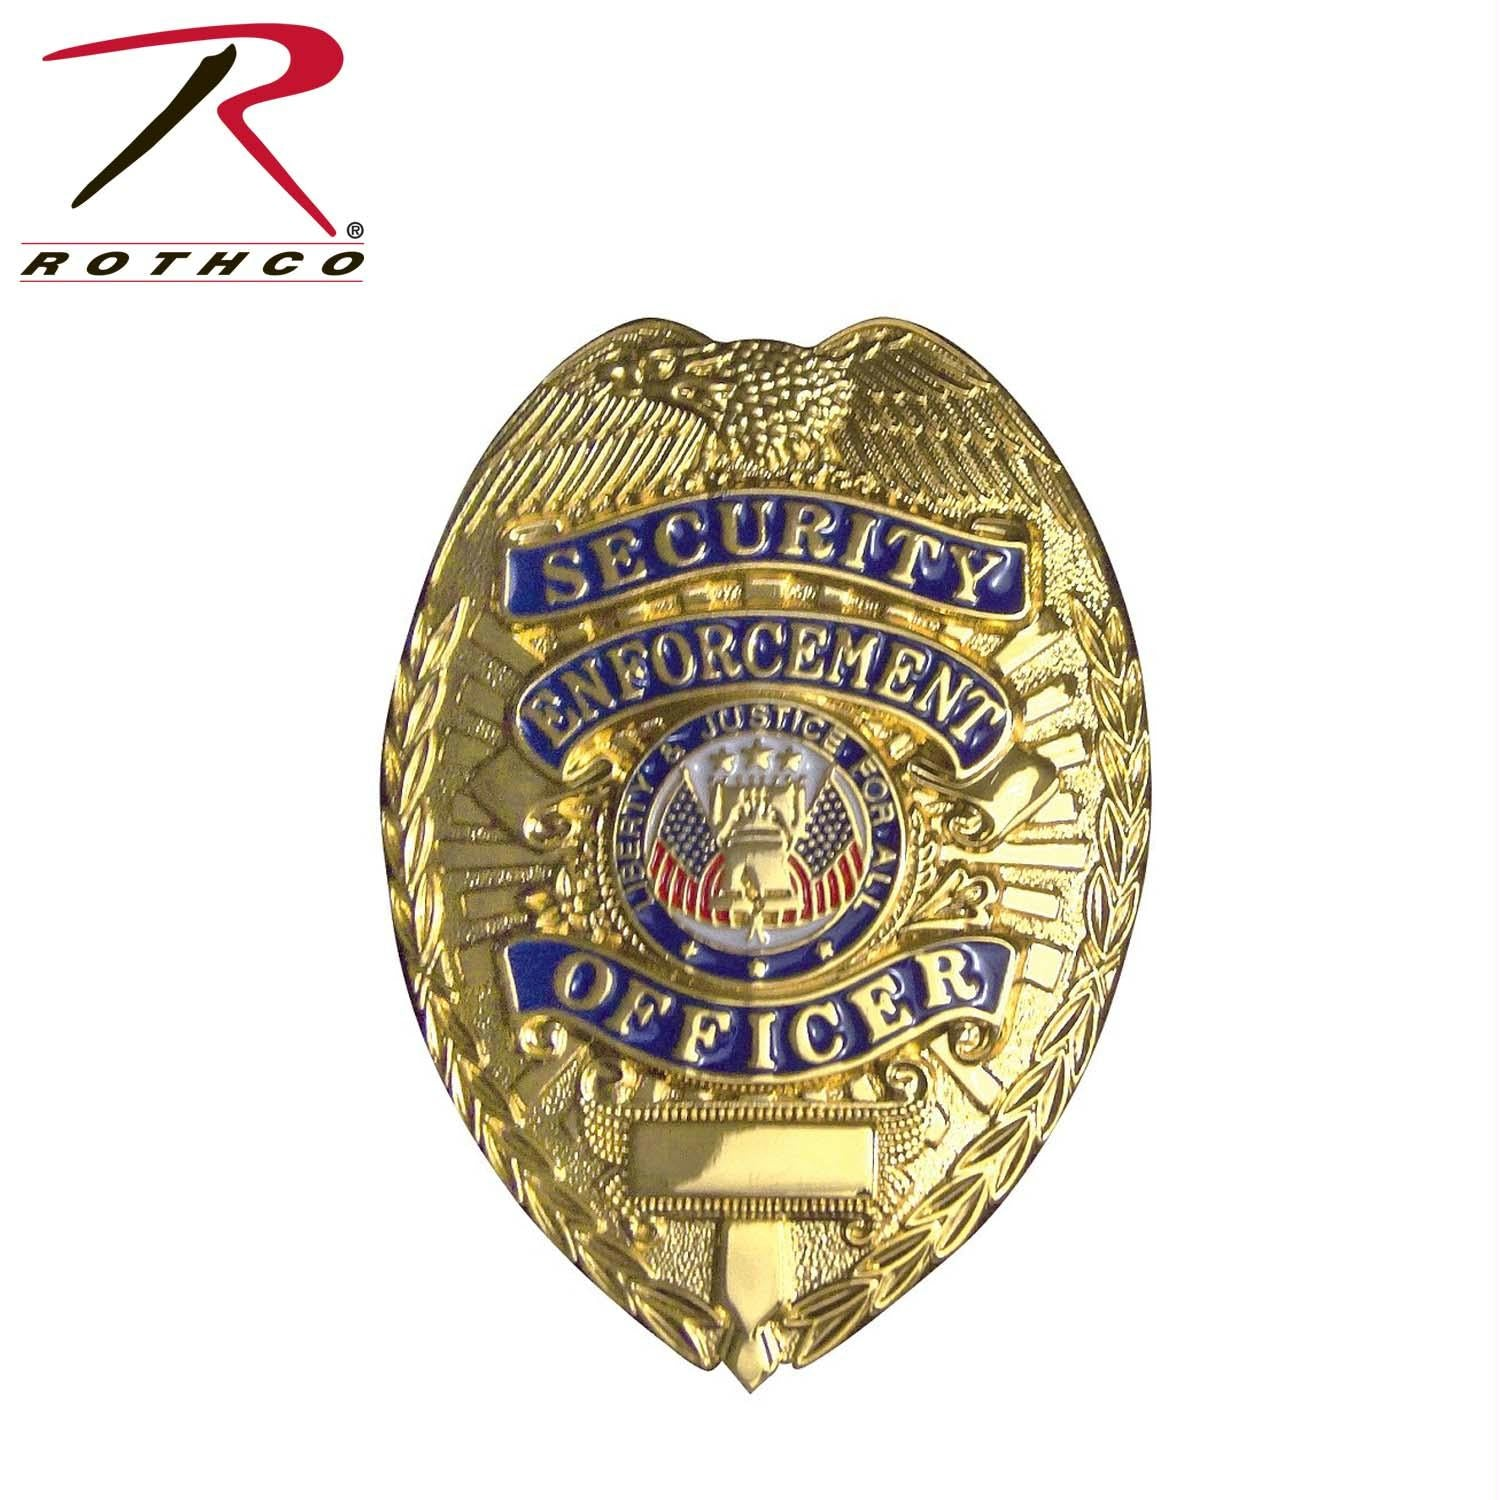 Rothco Deluxe Security Enforcement Officer Badge - Gold